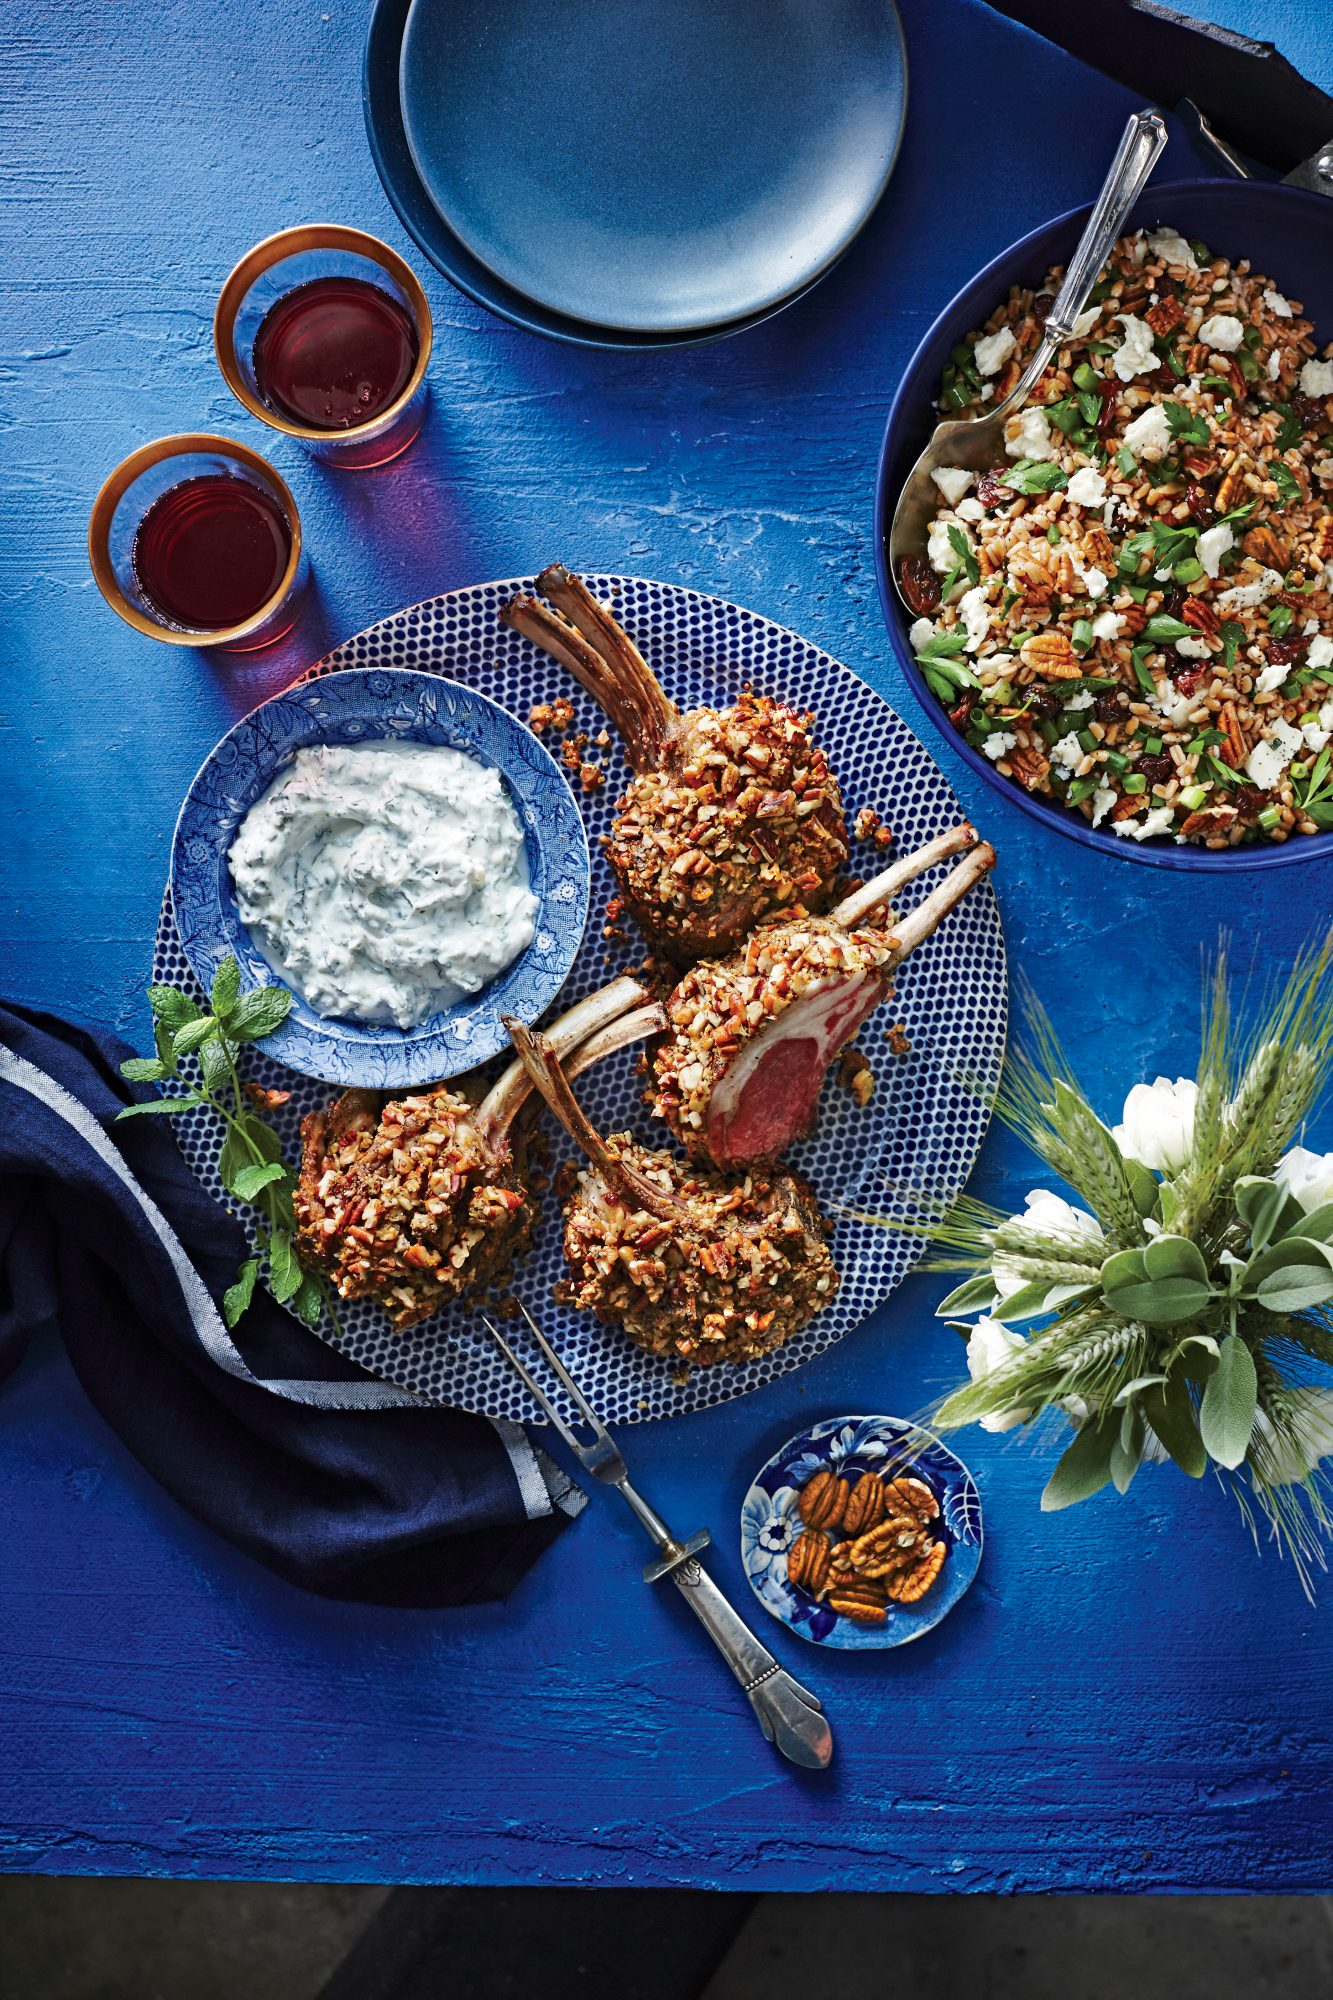 Pecan-Crusted Rack of Lamb with Mint Dipping Sauce